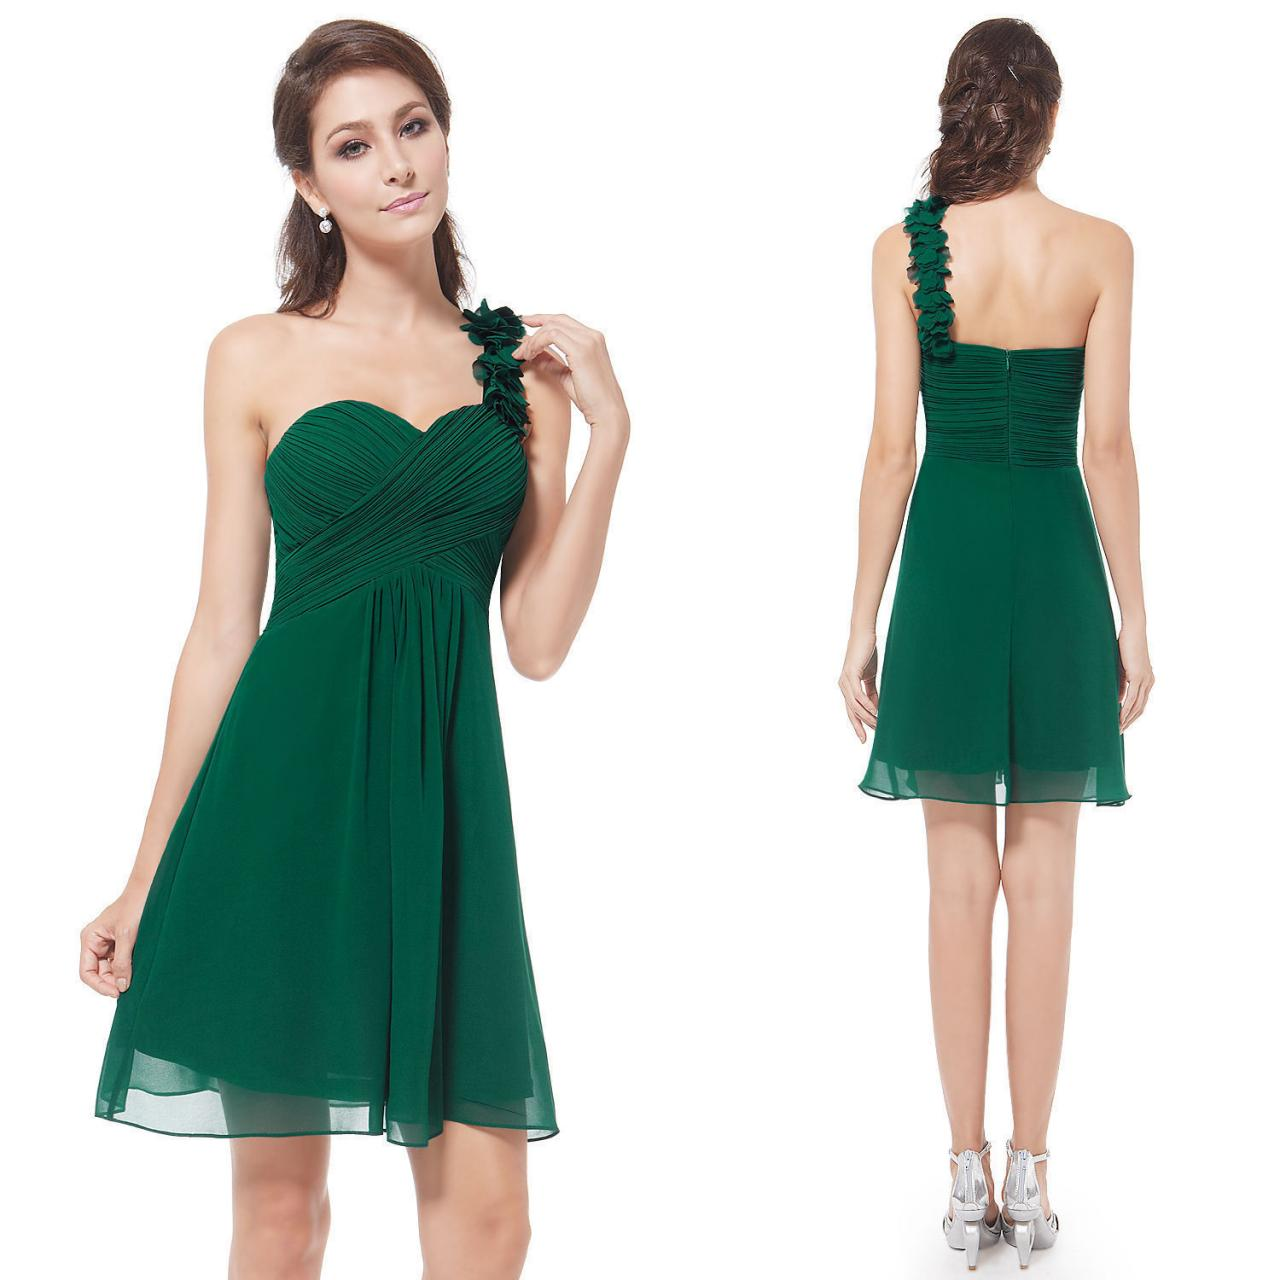 One Shoulder Green Chiffon Girls Homecoming Dresses Simple Party Gowns Knee-Length Cocktail Gowns Summer Gowns ,Women Party Gowns